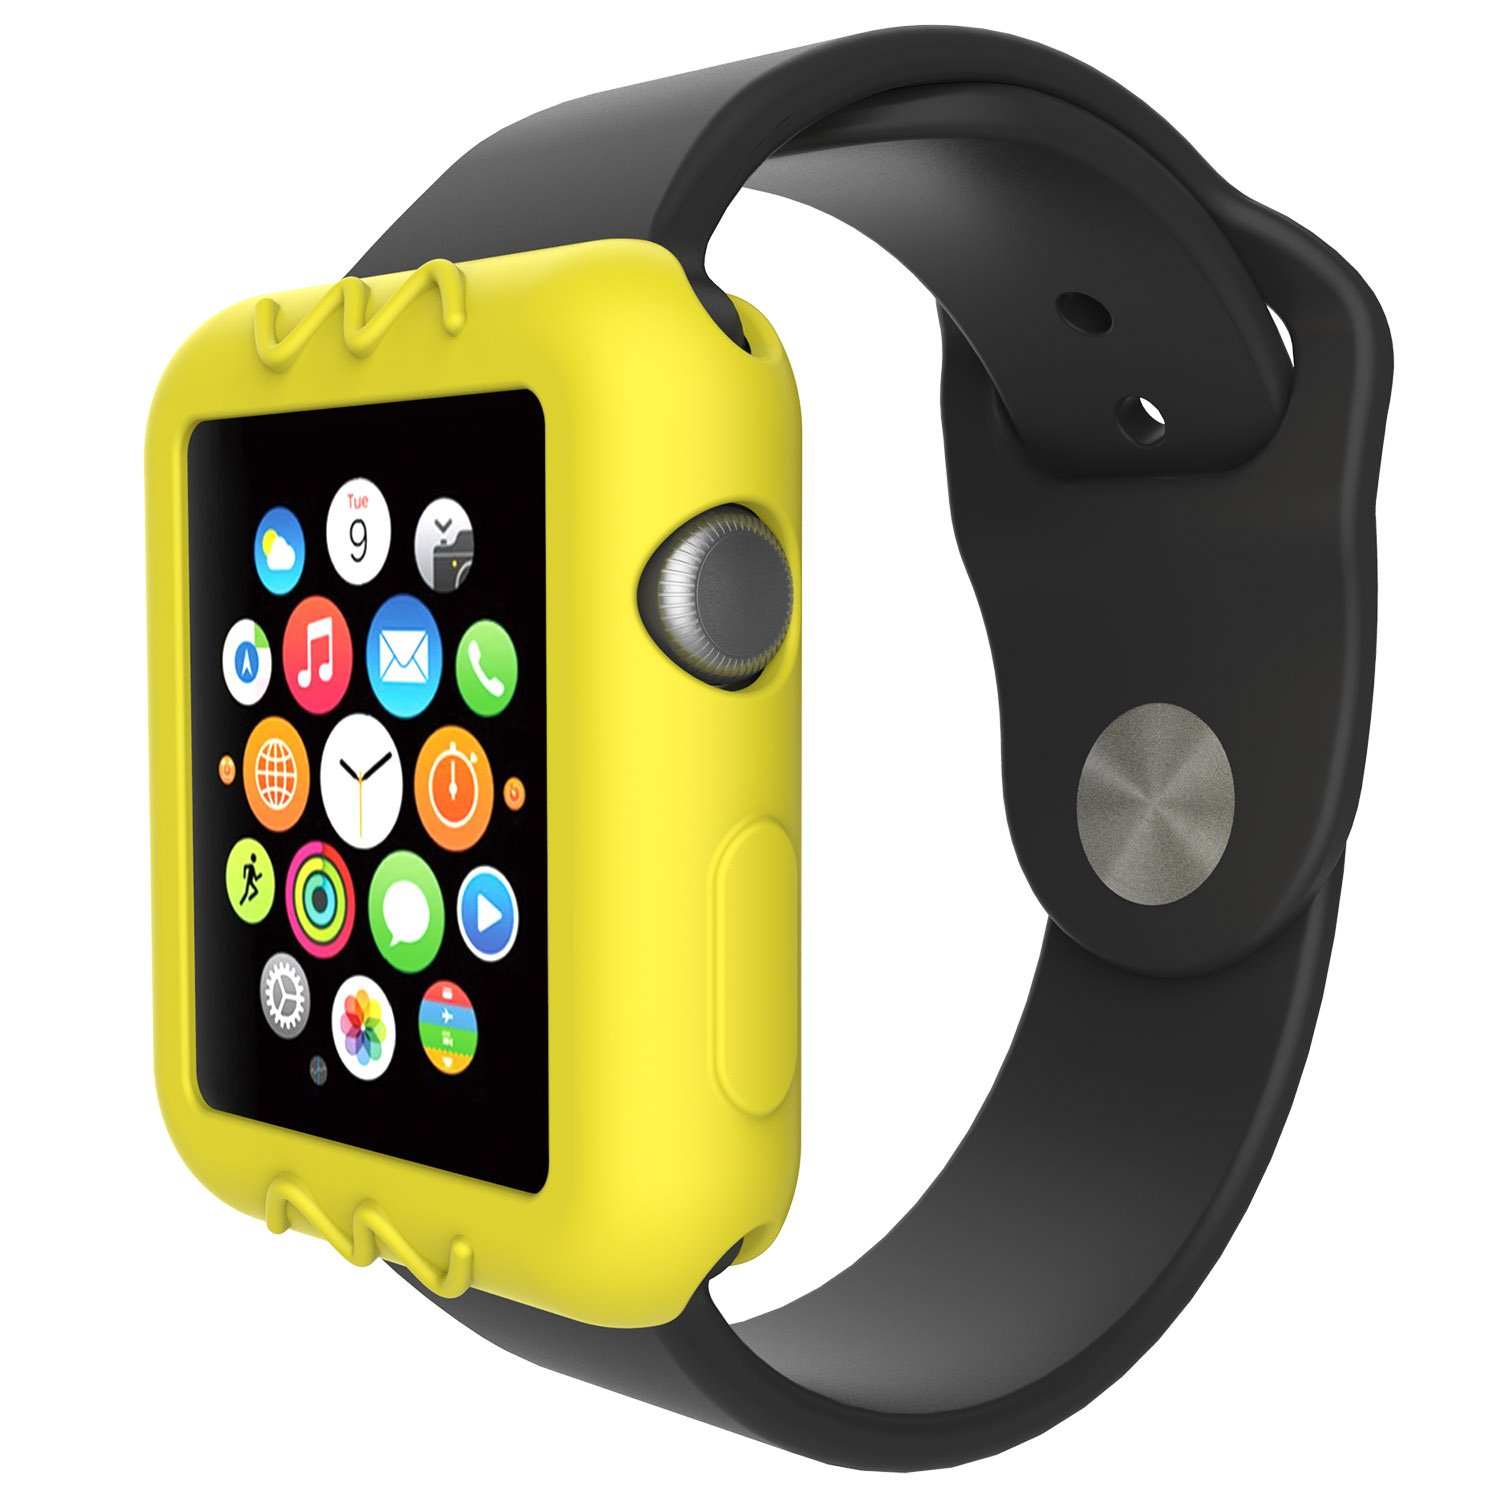 for Apple Watch 38mm Protective Case, Replacement Silicone Soft Case Cover for Apple Watch Series 3 2 1 Smartwatch (10Pack)